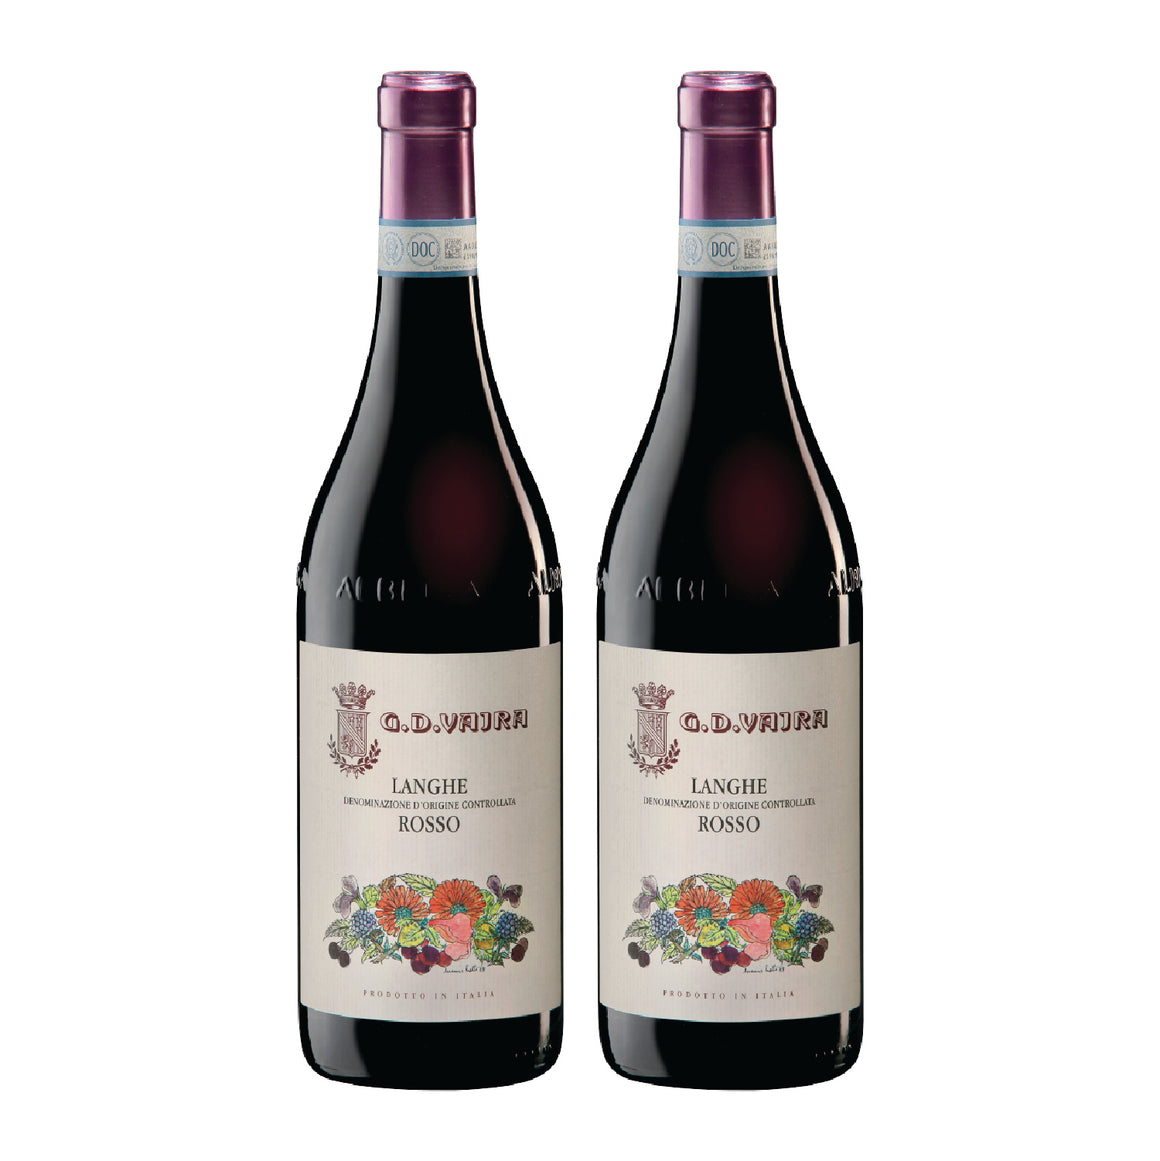 G.D VAJRA LANGHE ROSSO 2018 (2 TO GO)